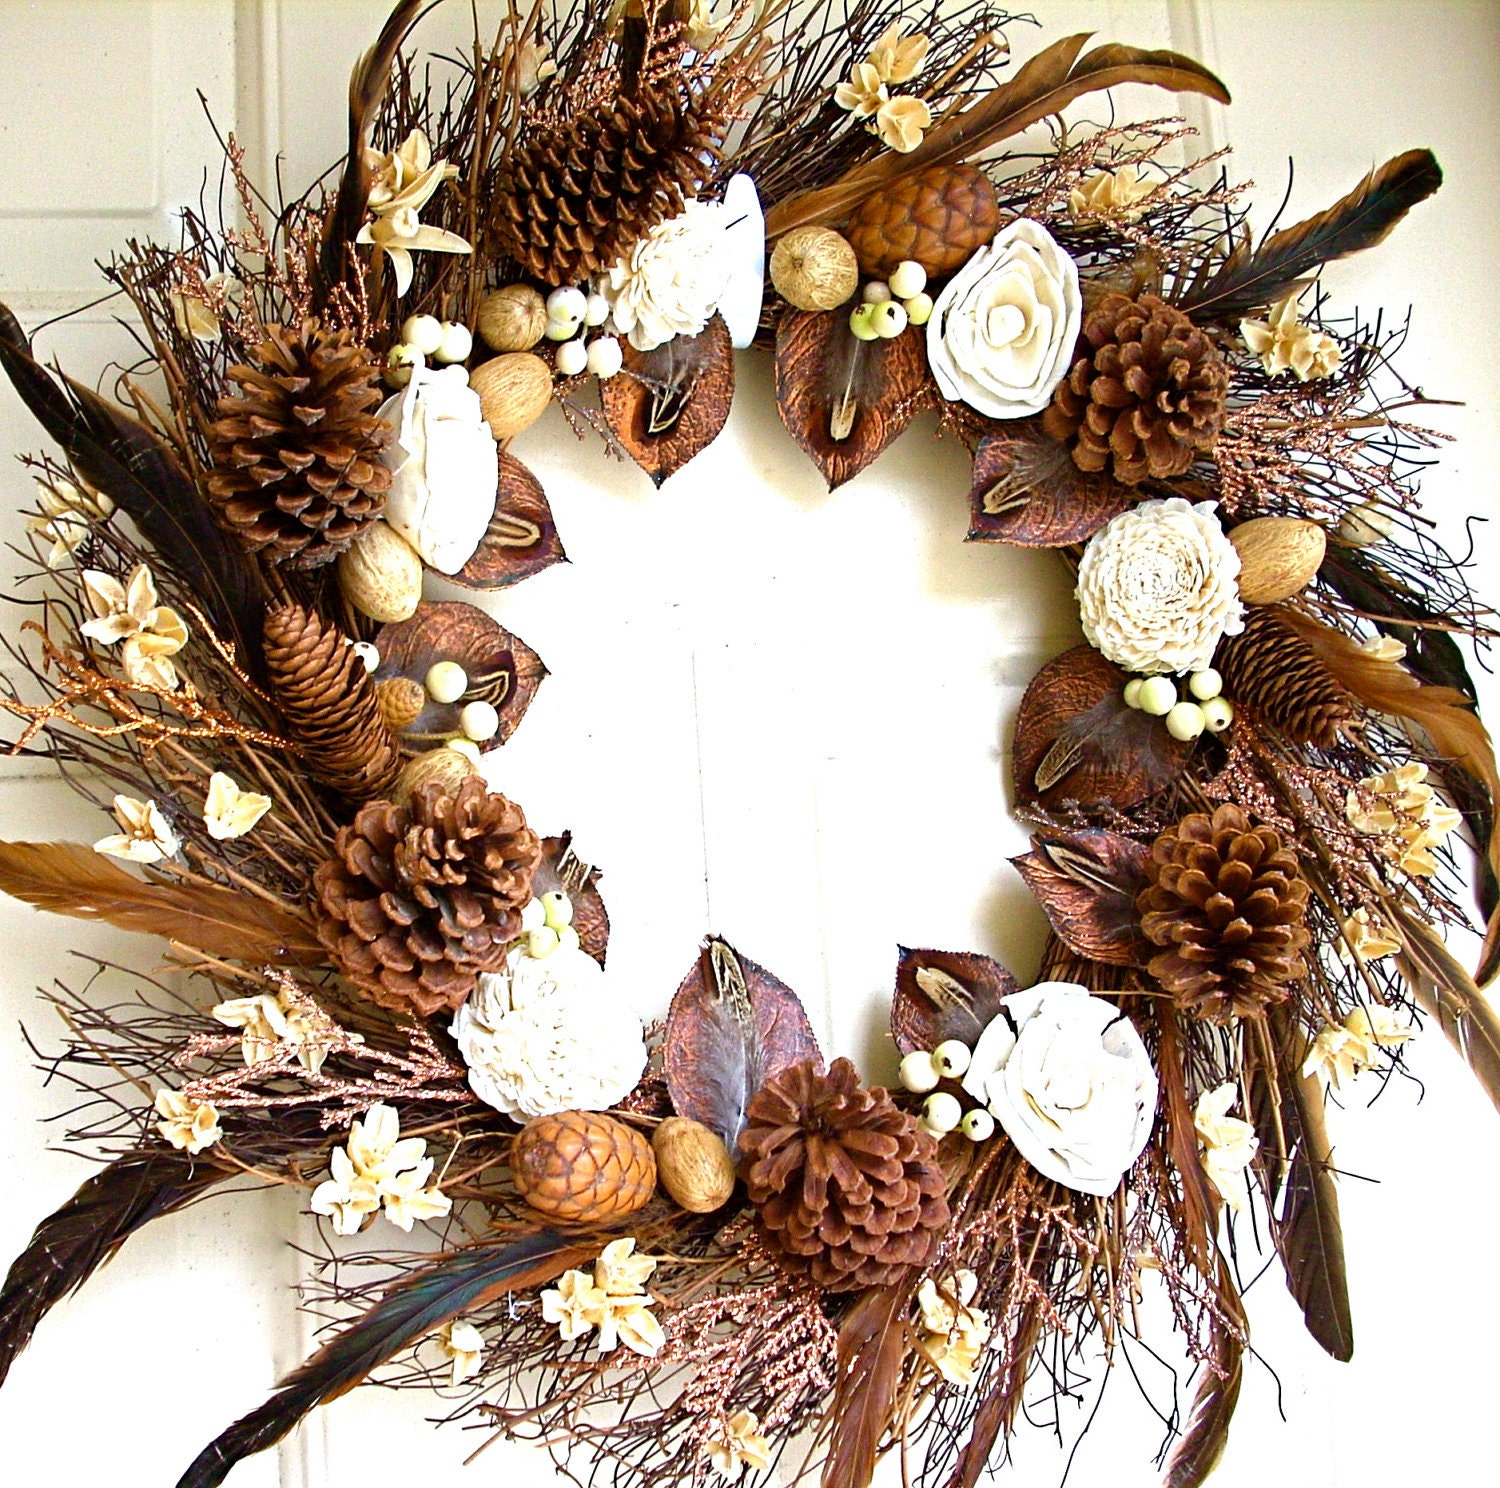 Vanilla and Chocolate Wreath